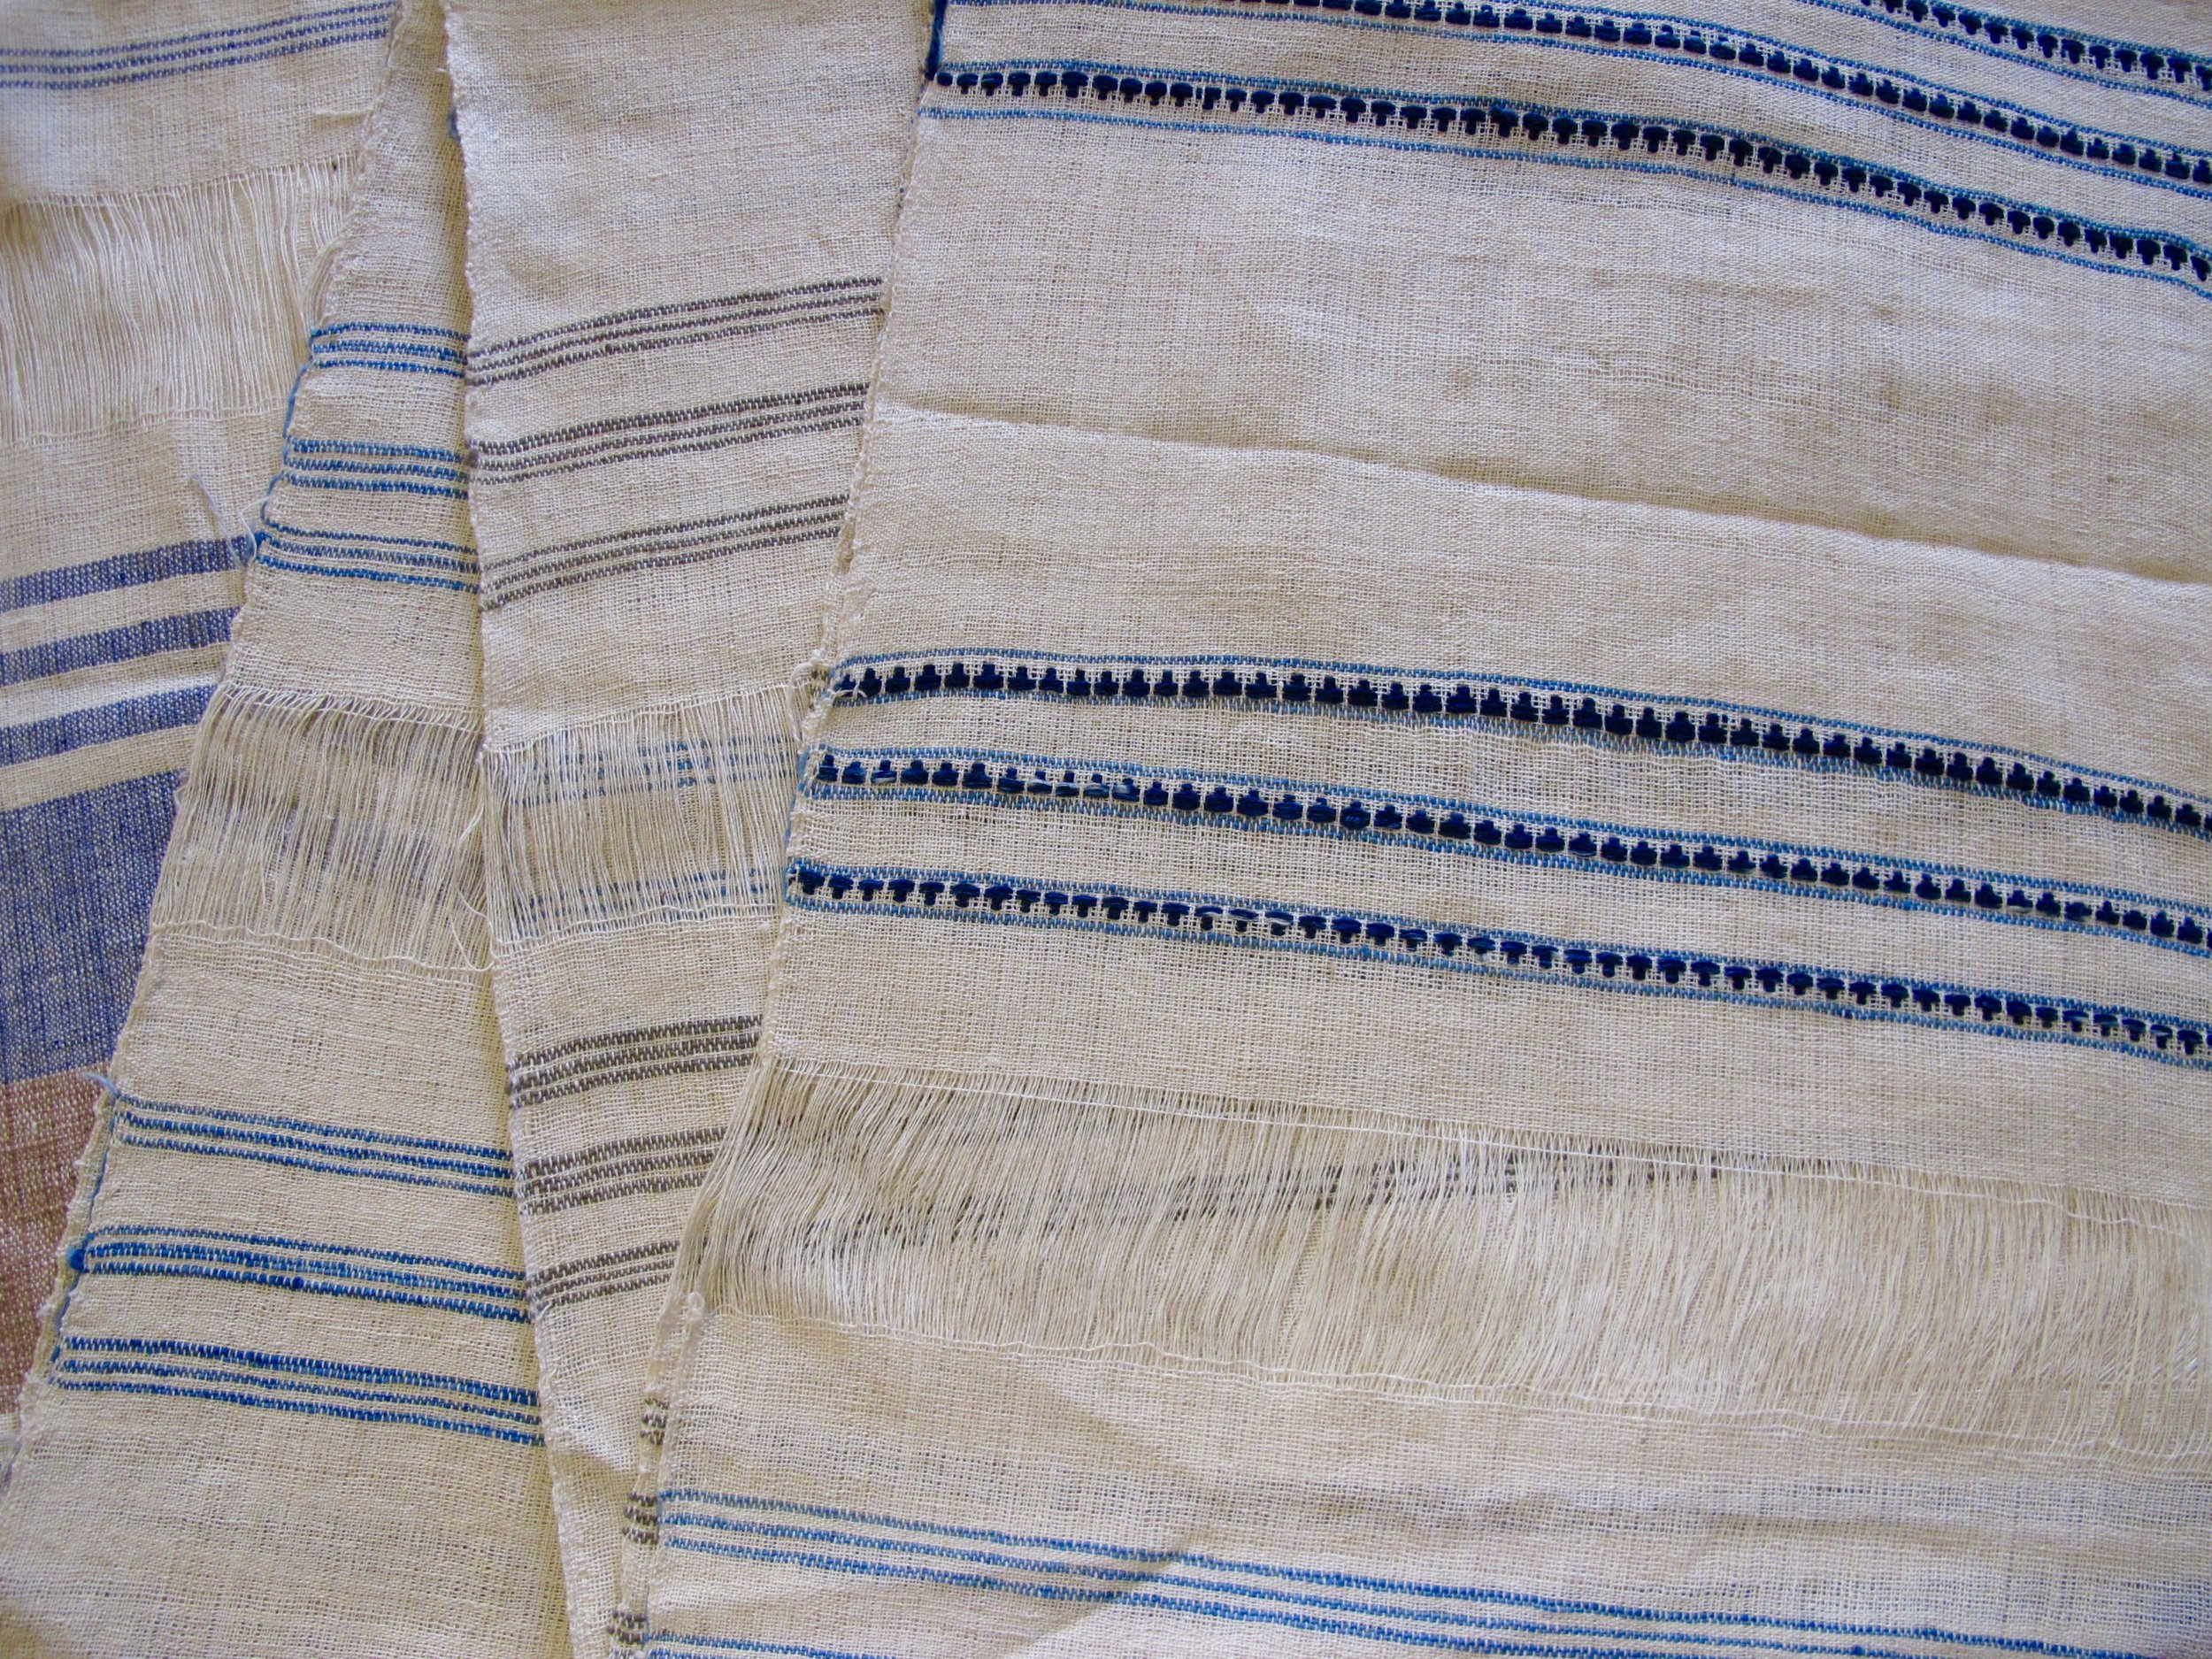 Detail of Panya's napkin designs